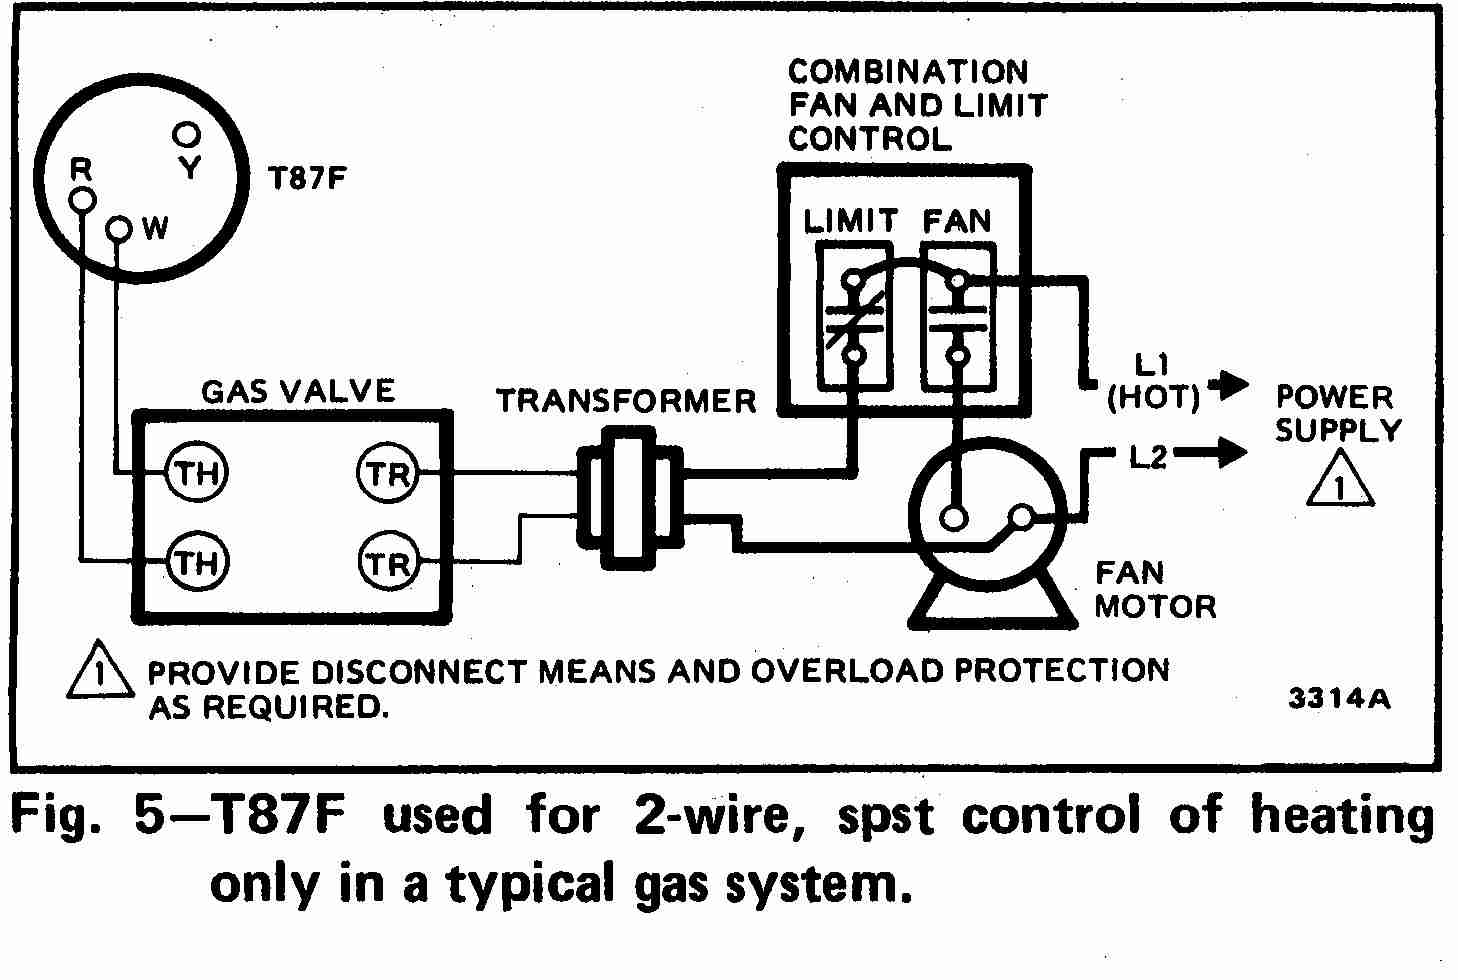 TT_T87F_0002_2Wg_DJF room thermostat wiring diagrams for hvac systems dayton gas heater wiring diagram at soozxer.org